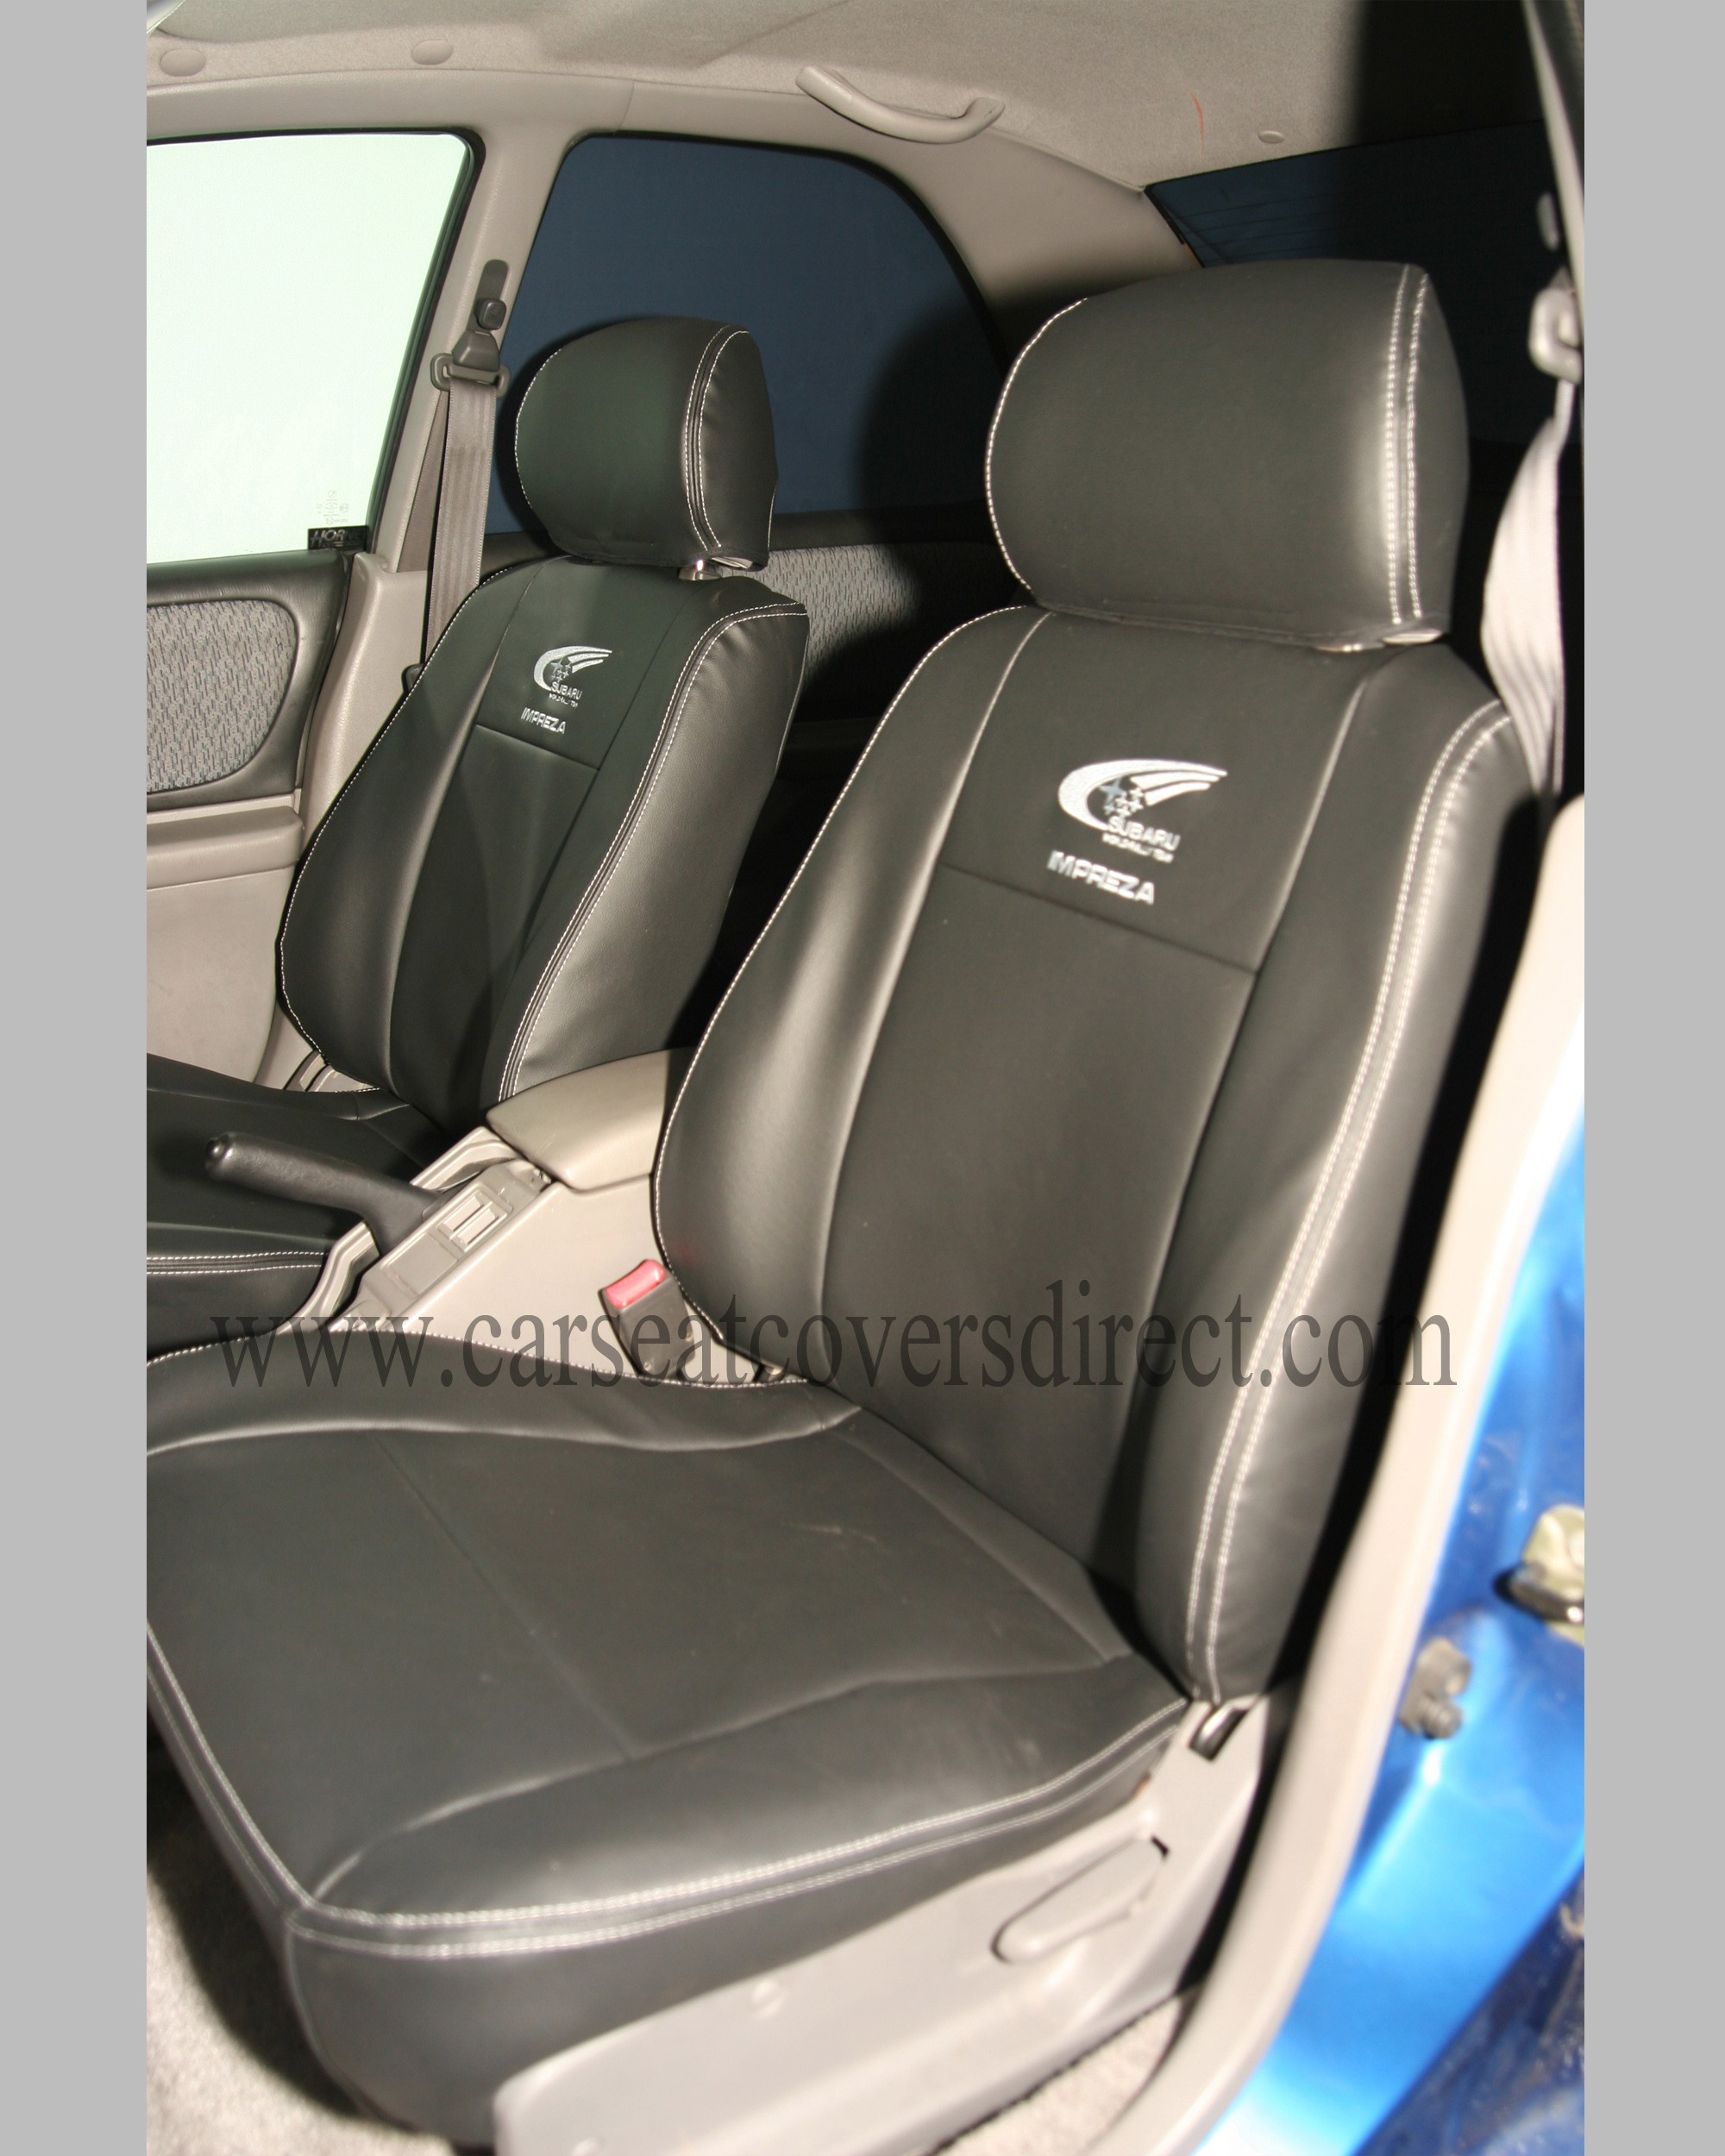 custom subaru impreza seat covers custom tailored seat covers car seat covers direct. Black Bedroom Furniture Sets. Home Design Ideas